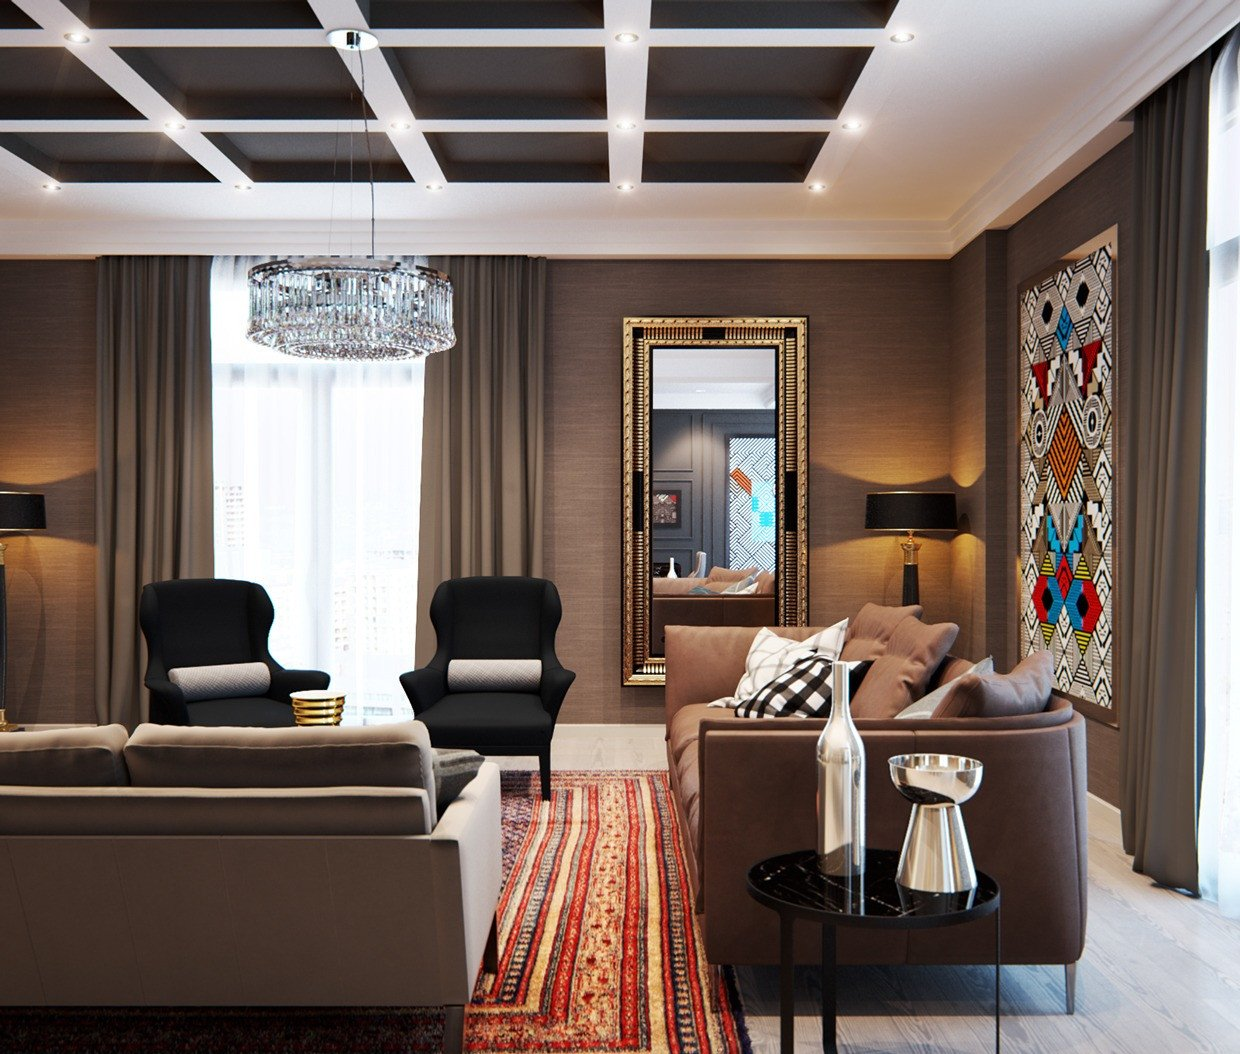 Elegant Contemporary Living Room A Modern Interior Home Design which Bining A Classic